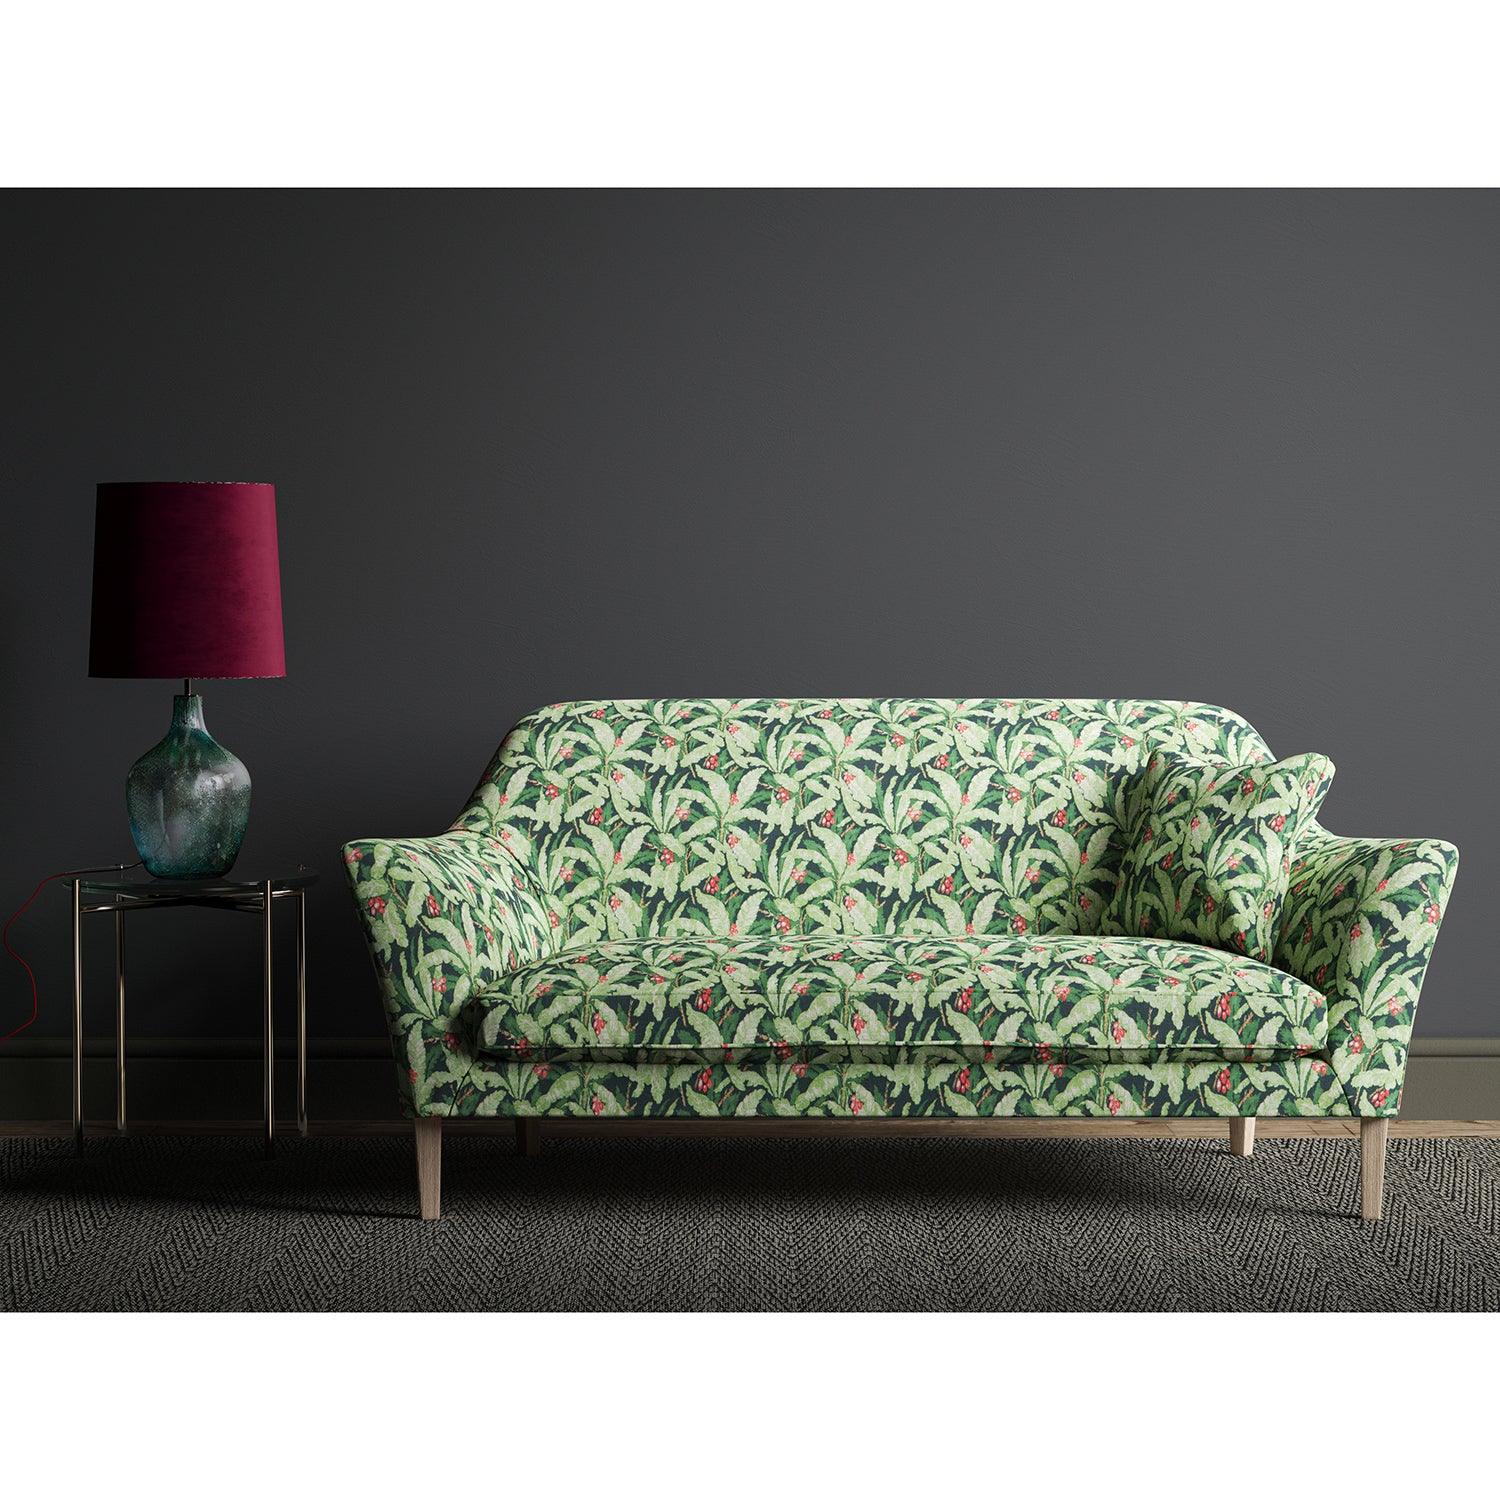 Navy and green sofa with a tropical leaf design